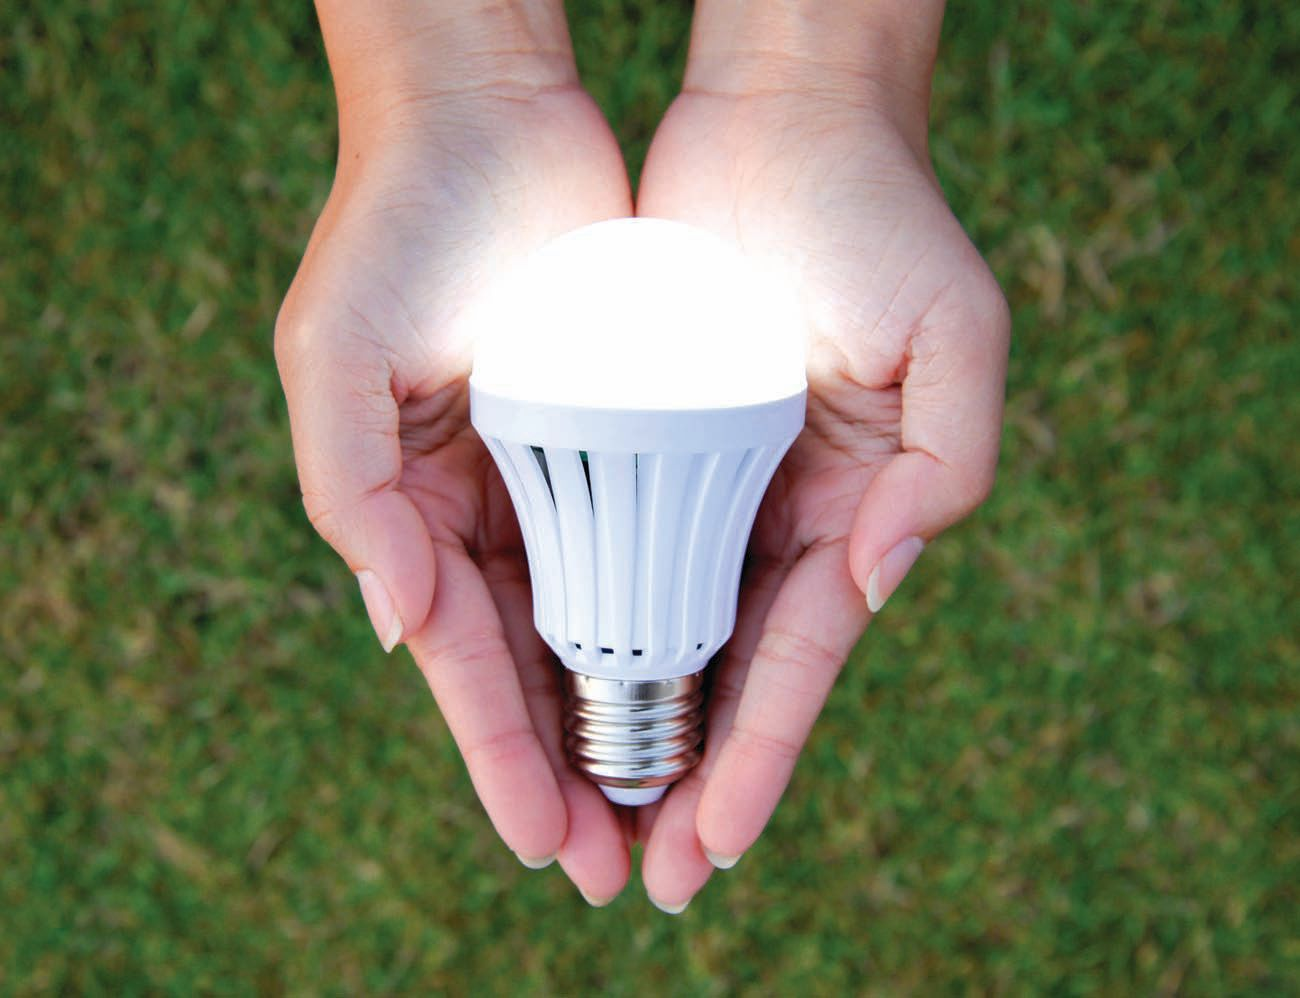 LED lightbulbs can reduce energy consumption